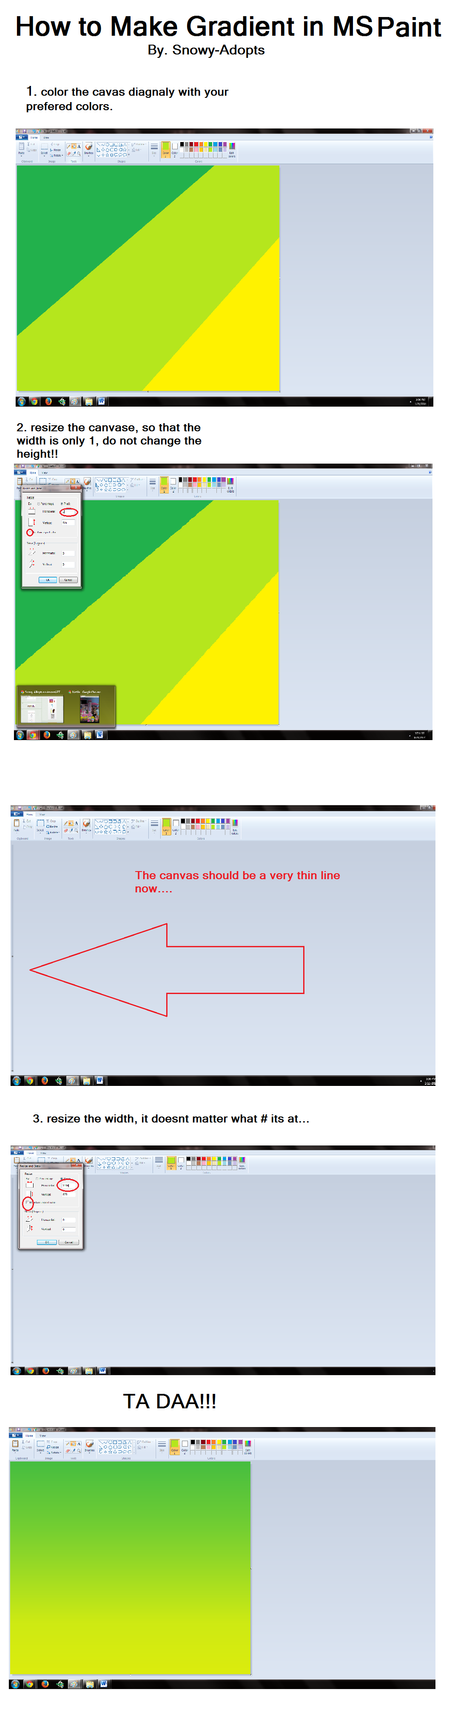 MS Paint Tutorial #1 Gradiants by Snowy-Adopts